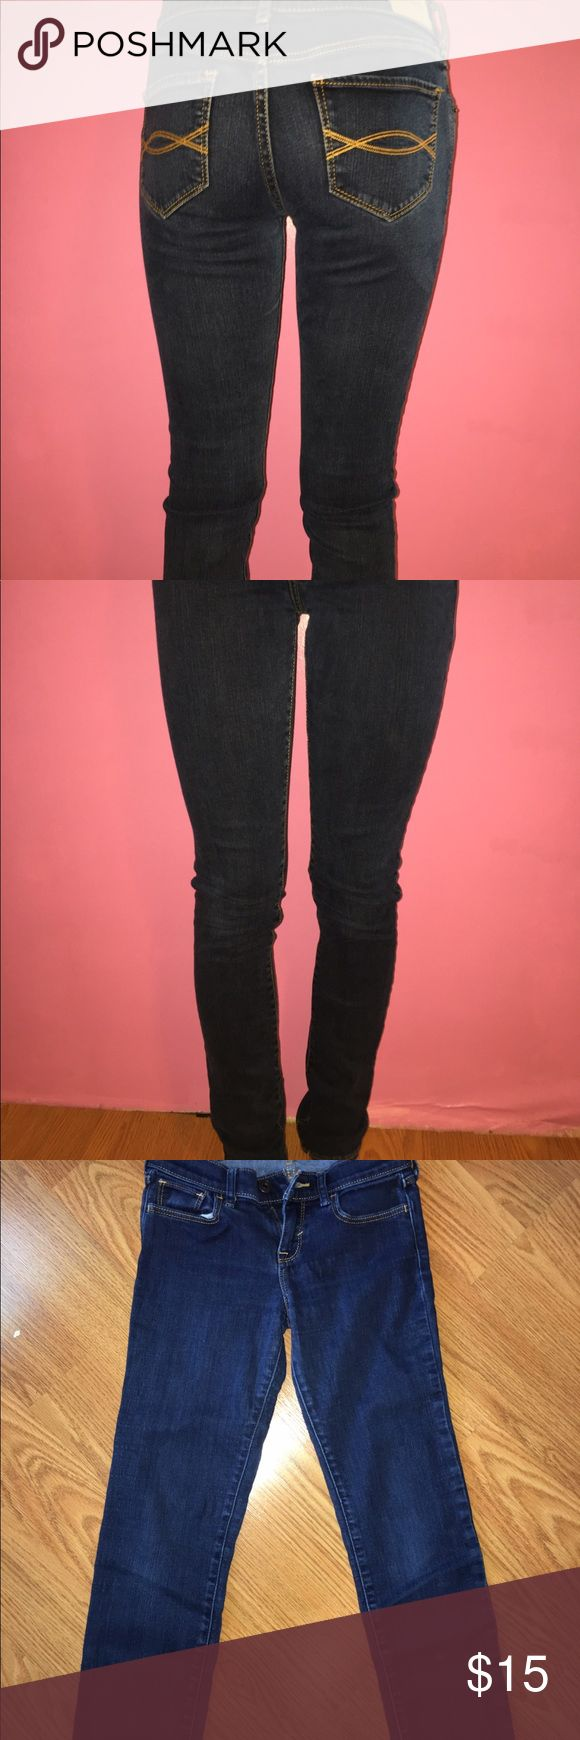 Abercrombie Girls jeans Like new Abercrombie Girls jeans. Only worn a couple times. Abercombie Kids Bottoms Jeans